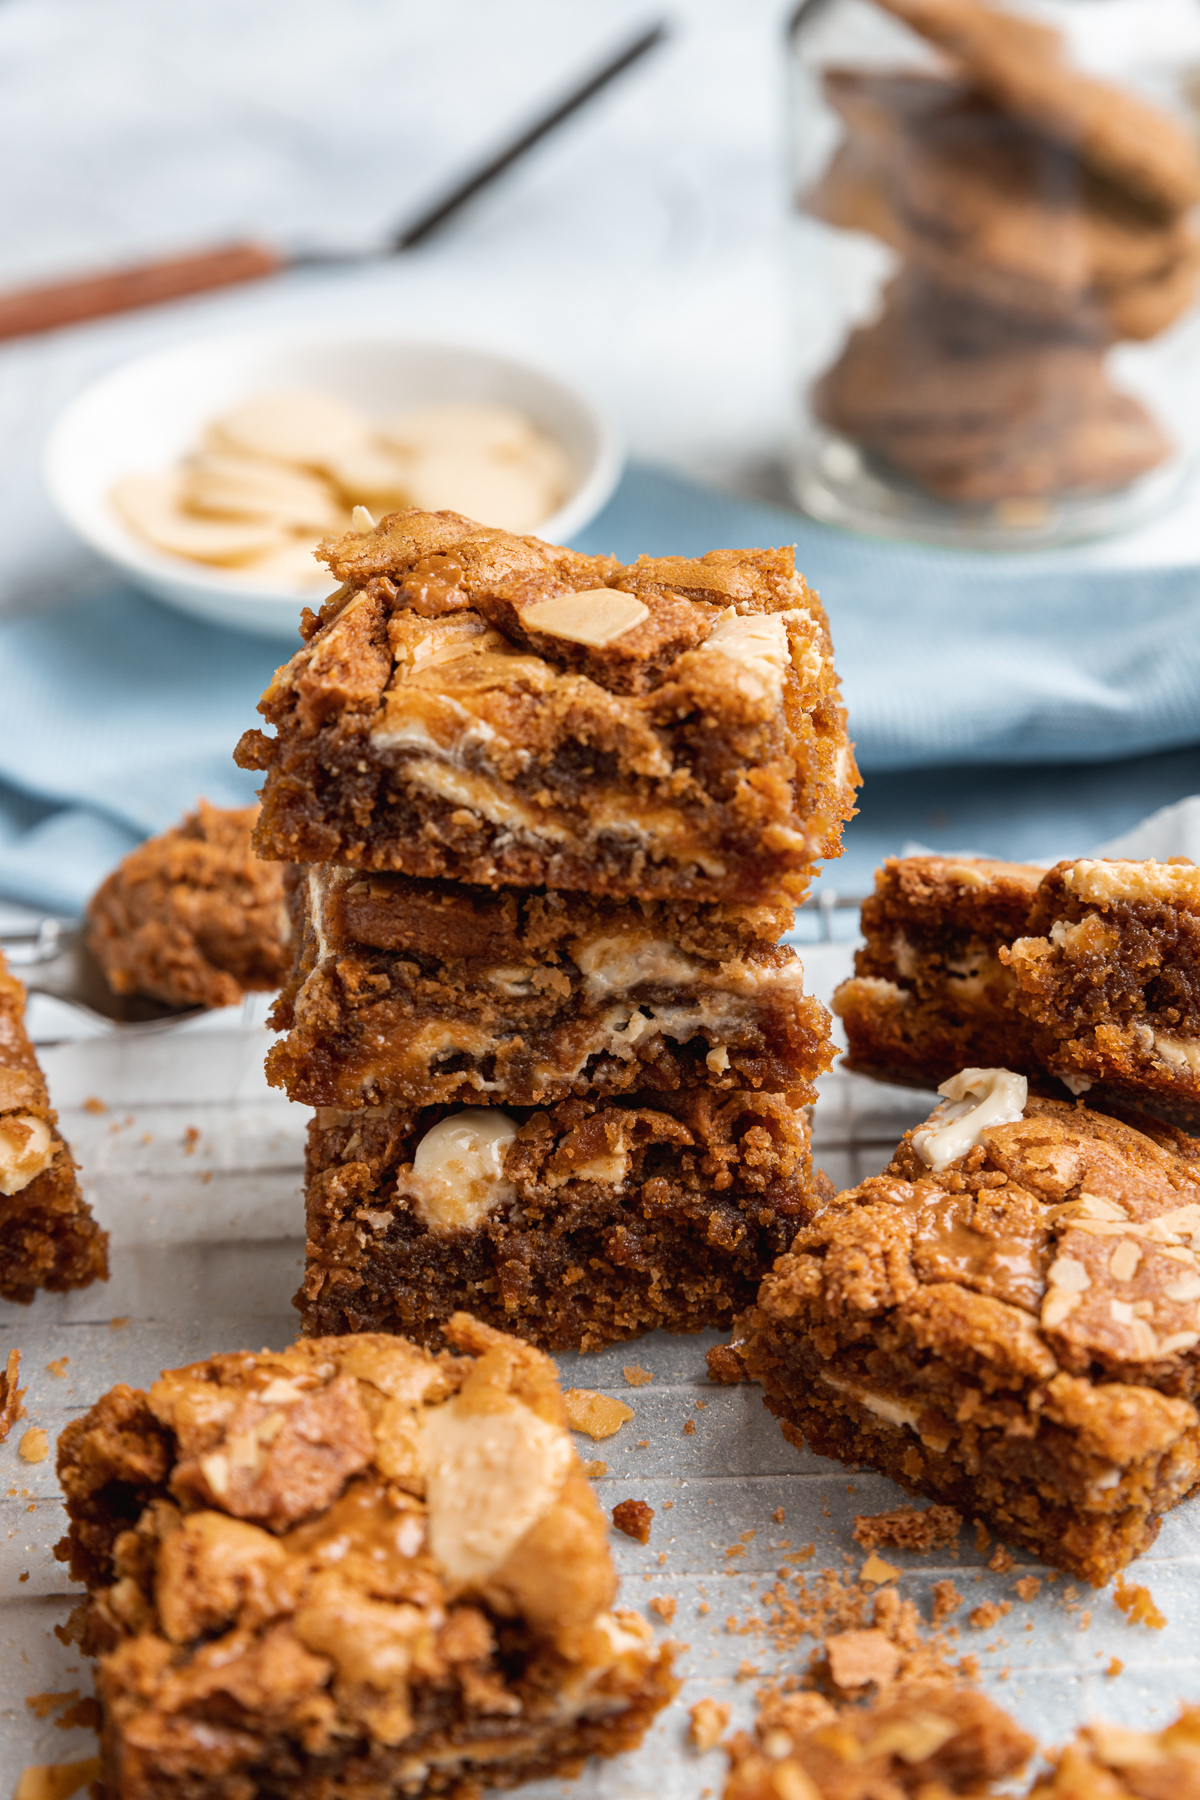 A stack of 3 Biscoff blondies on a wire cooking rack with ingredients in the background and other blondies all around